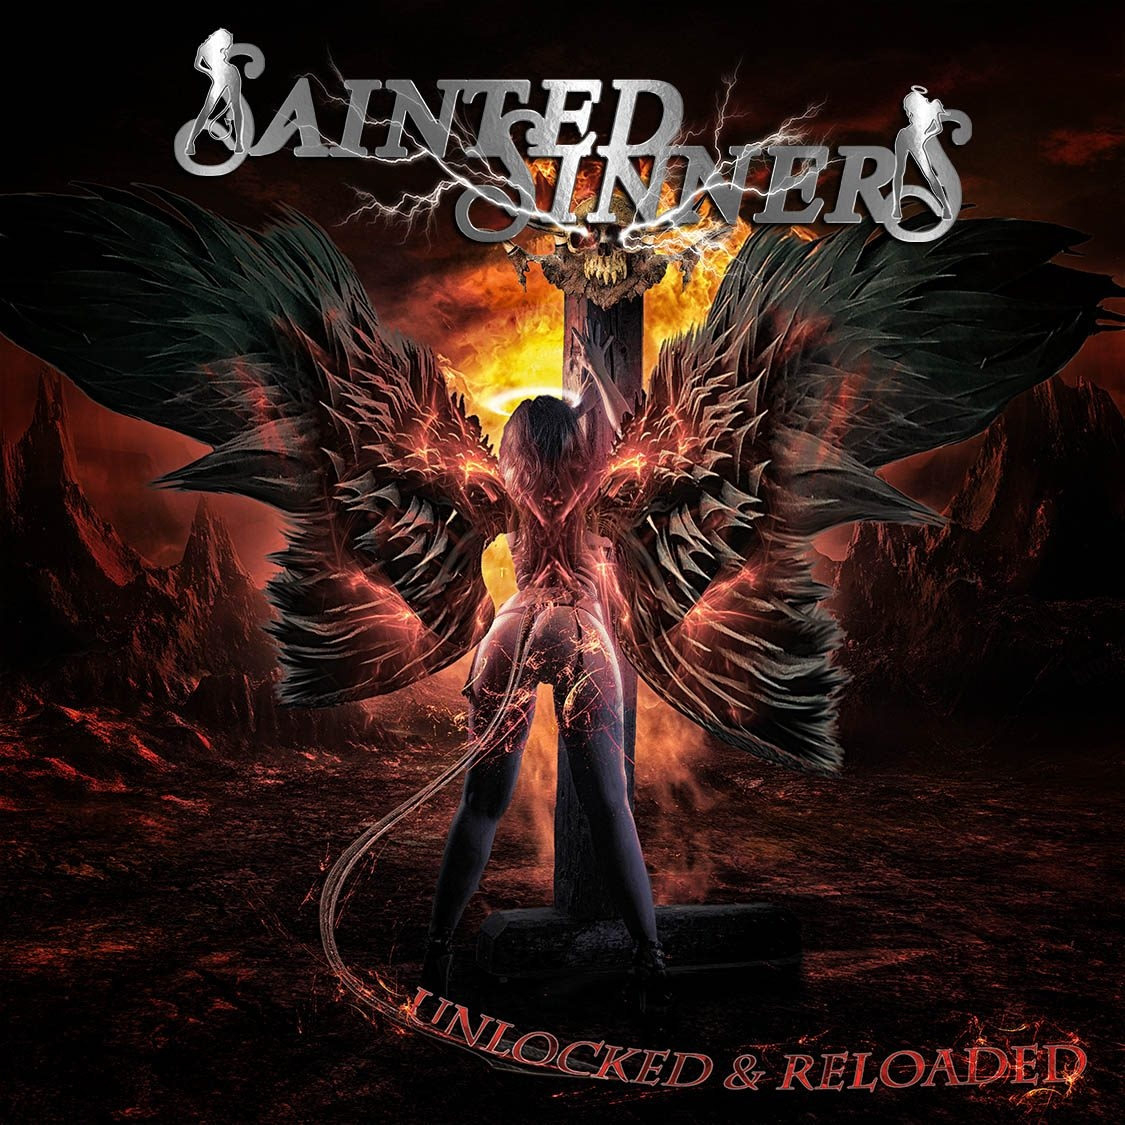 Review: Sainted Sinners Unlocked & Reloaded